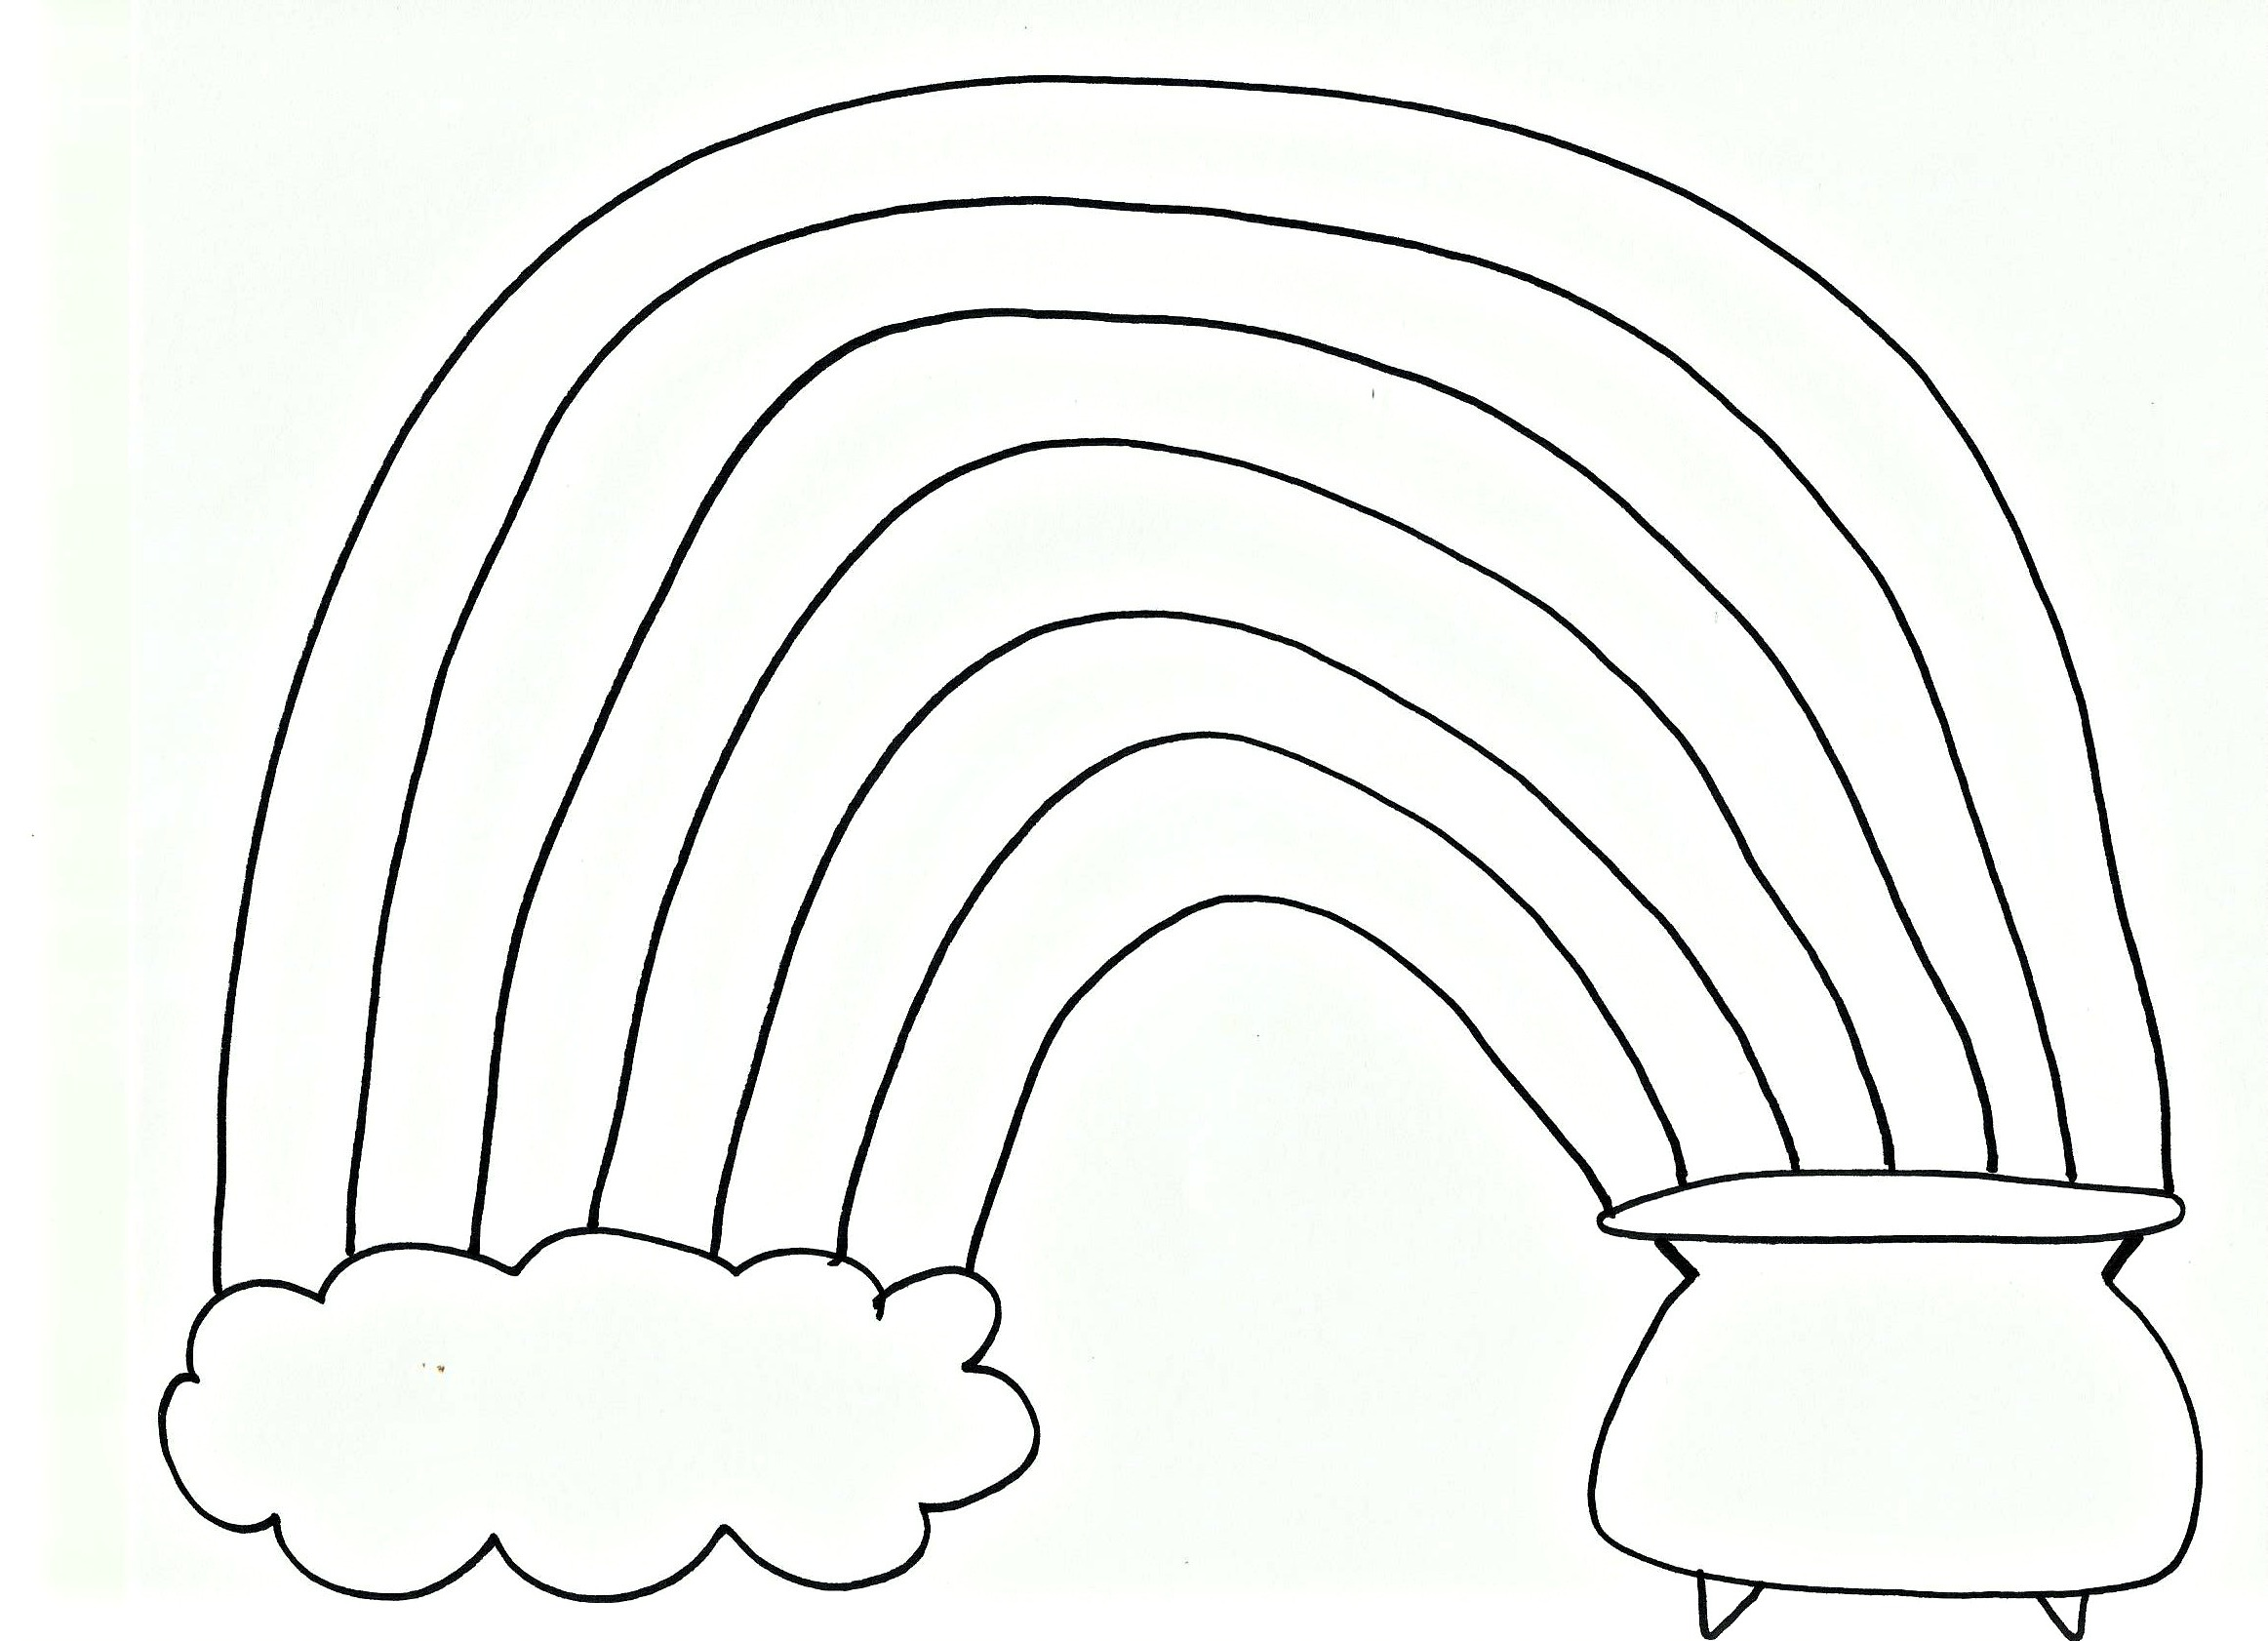 Pom pom rainbow craft for st patrick 39 s day free for Coloring page rainbow